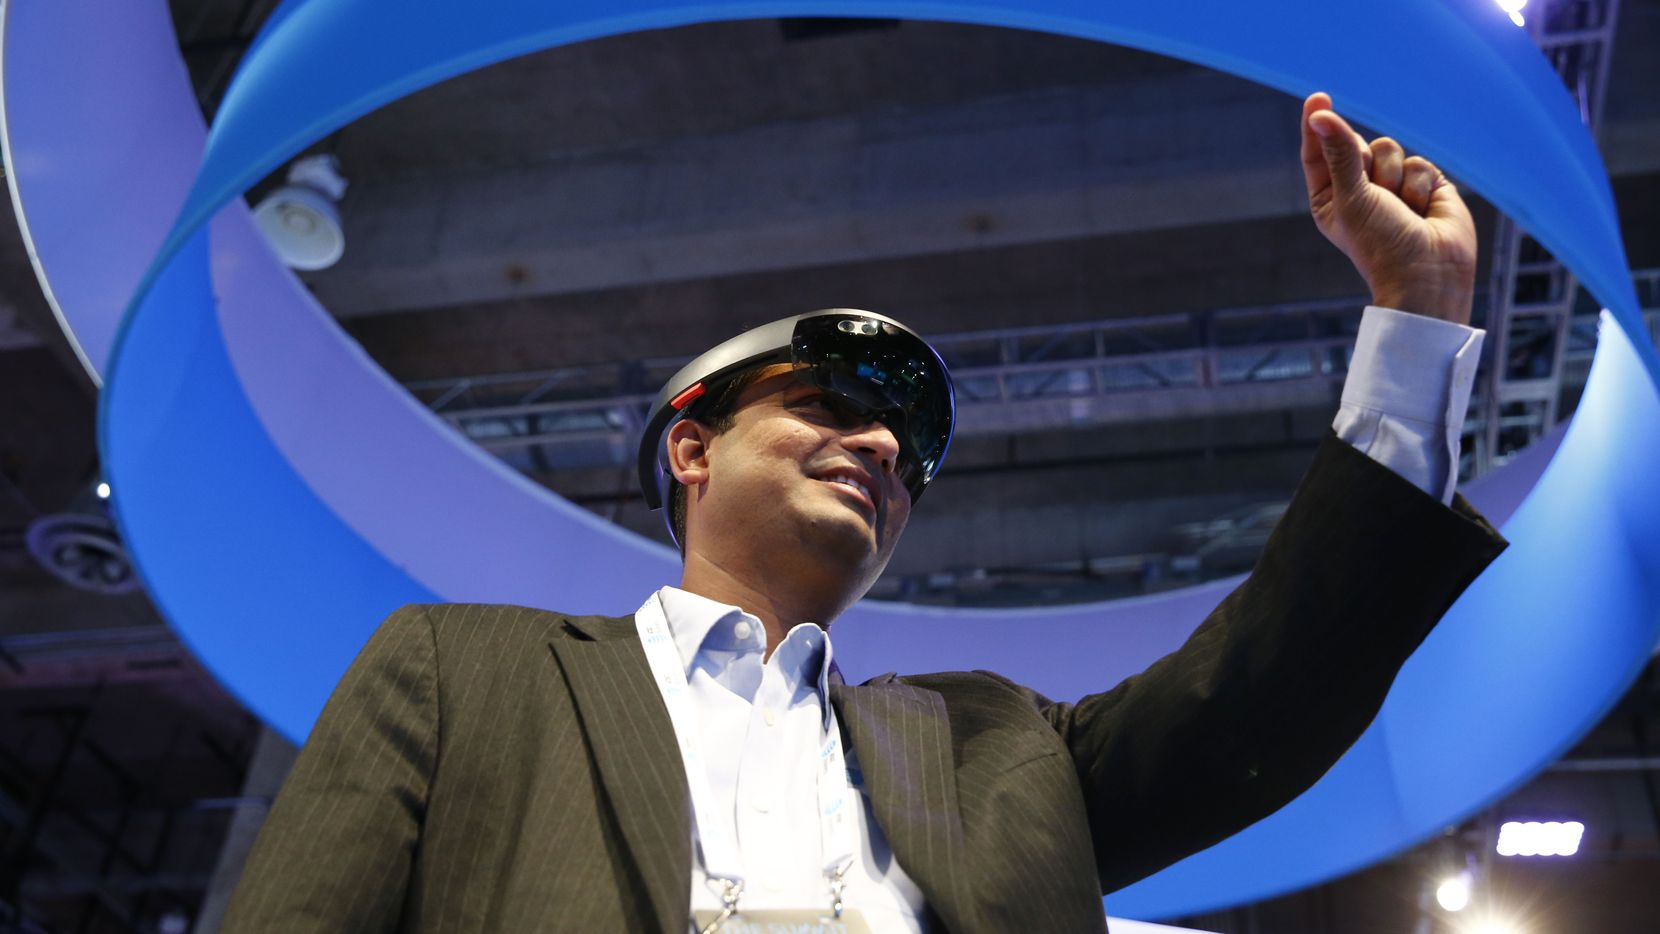 SaiGanesh Gopal uses Microsoft Hololens wearable holographic computer during The Summit for AT&T at the Gaylord Texan Resort Hotel & Convention Center in Grapevine on Oct. 31, 2017.   (Nathan Hunsinger/The Dallas Morning News)